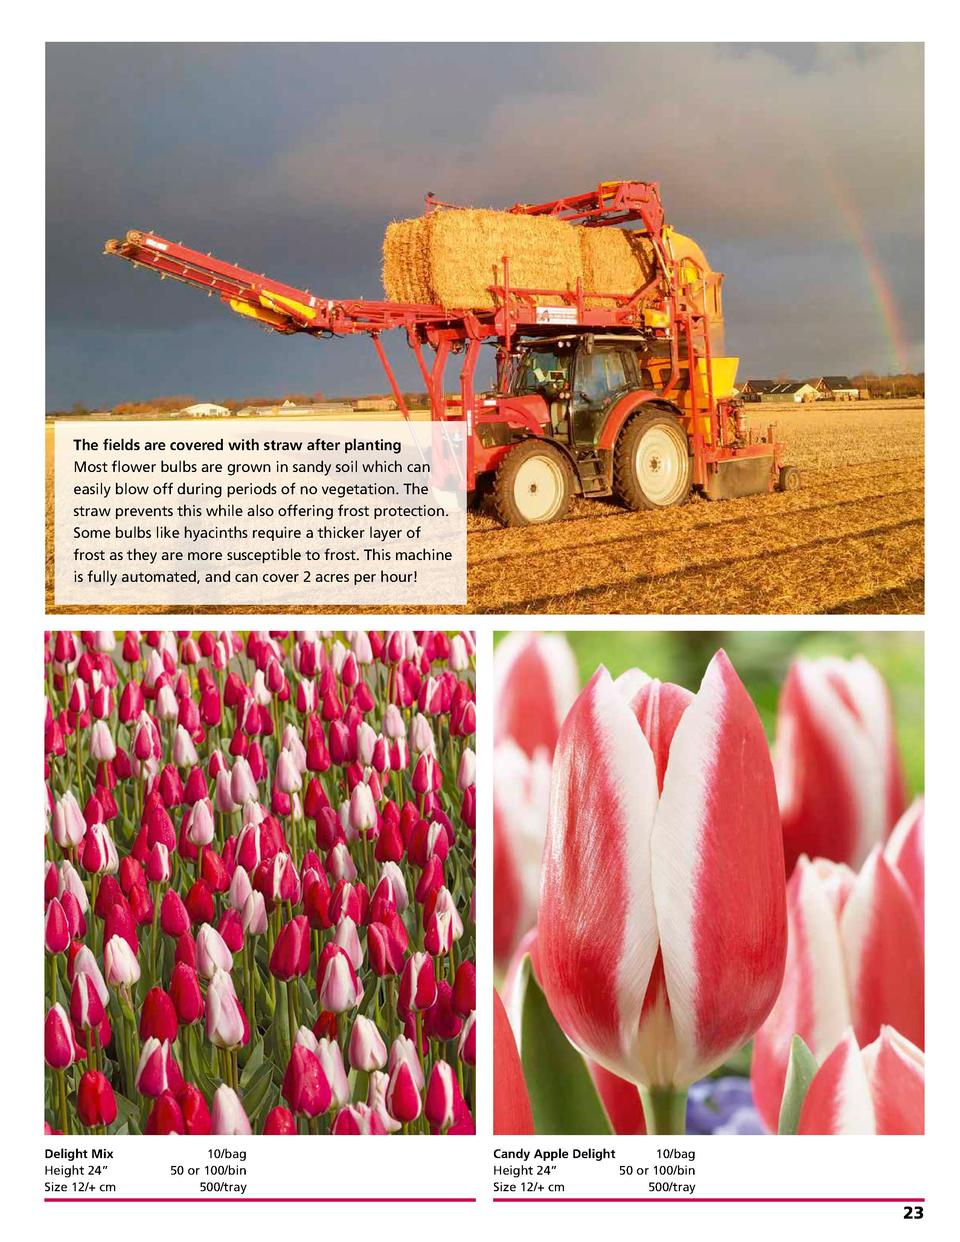 The fields are covered with straw after planting Most flower bulbs are grown in sandy soil which can easily blow off durin...